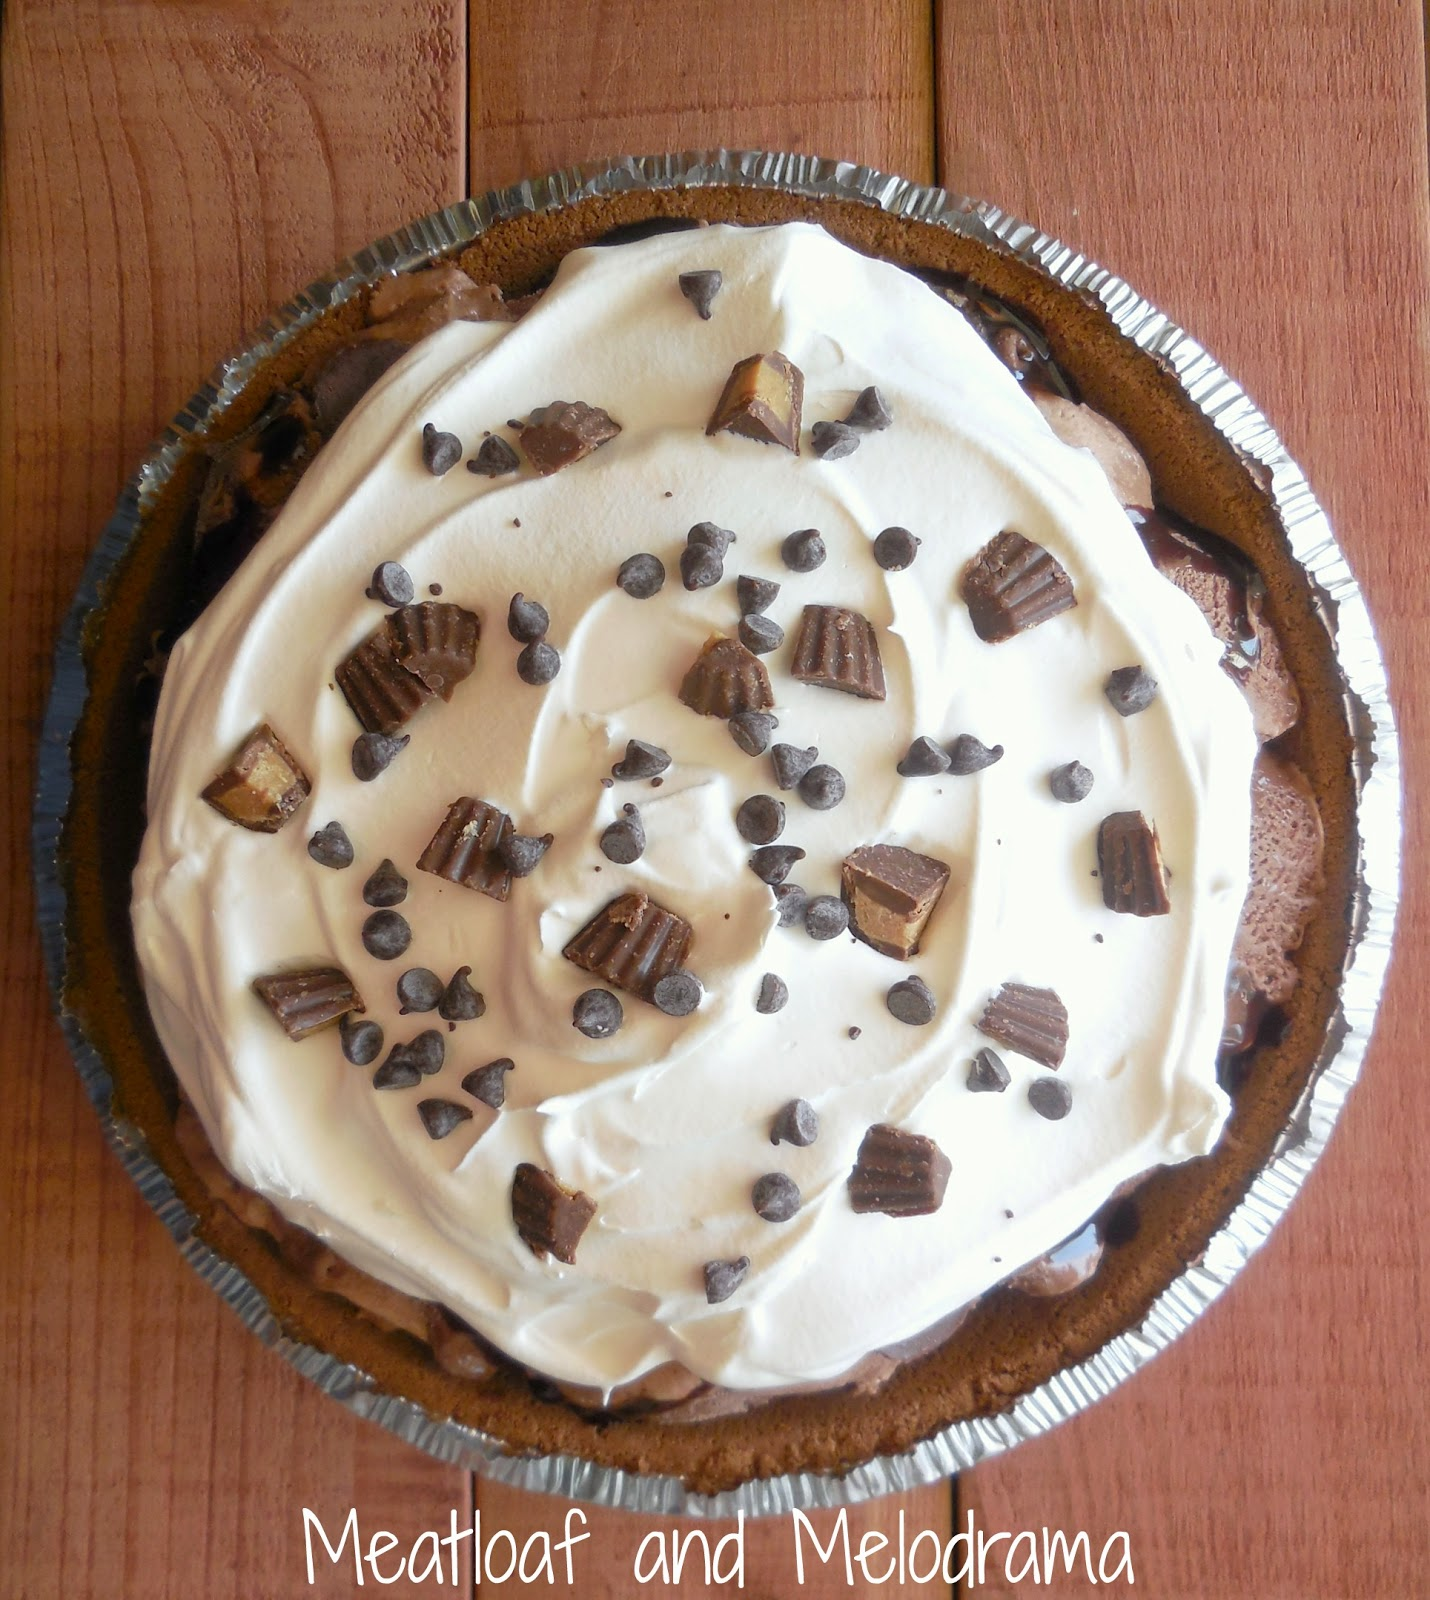 chocolate ice cream pie with whipped topping, chocolate chips and reese's cups on top